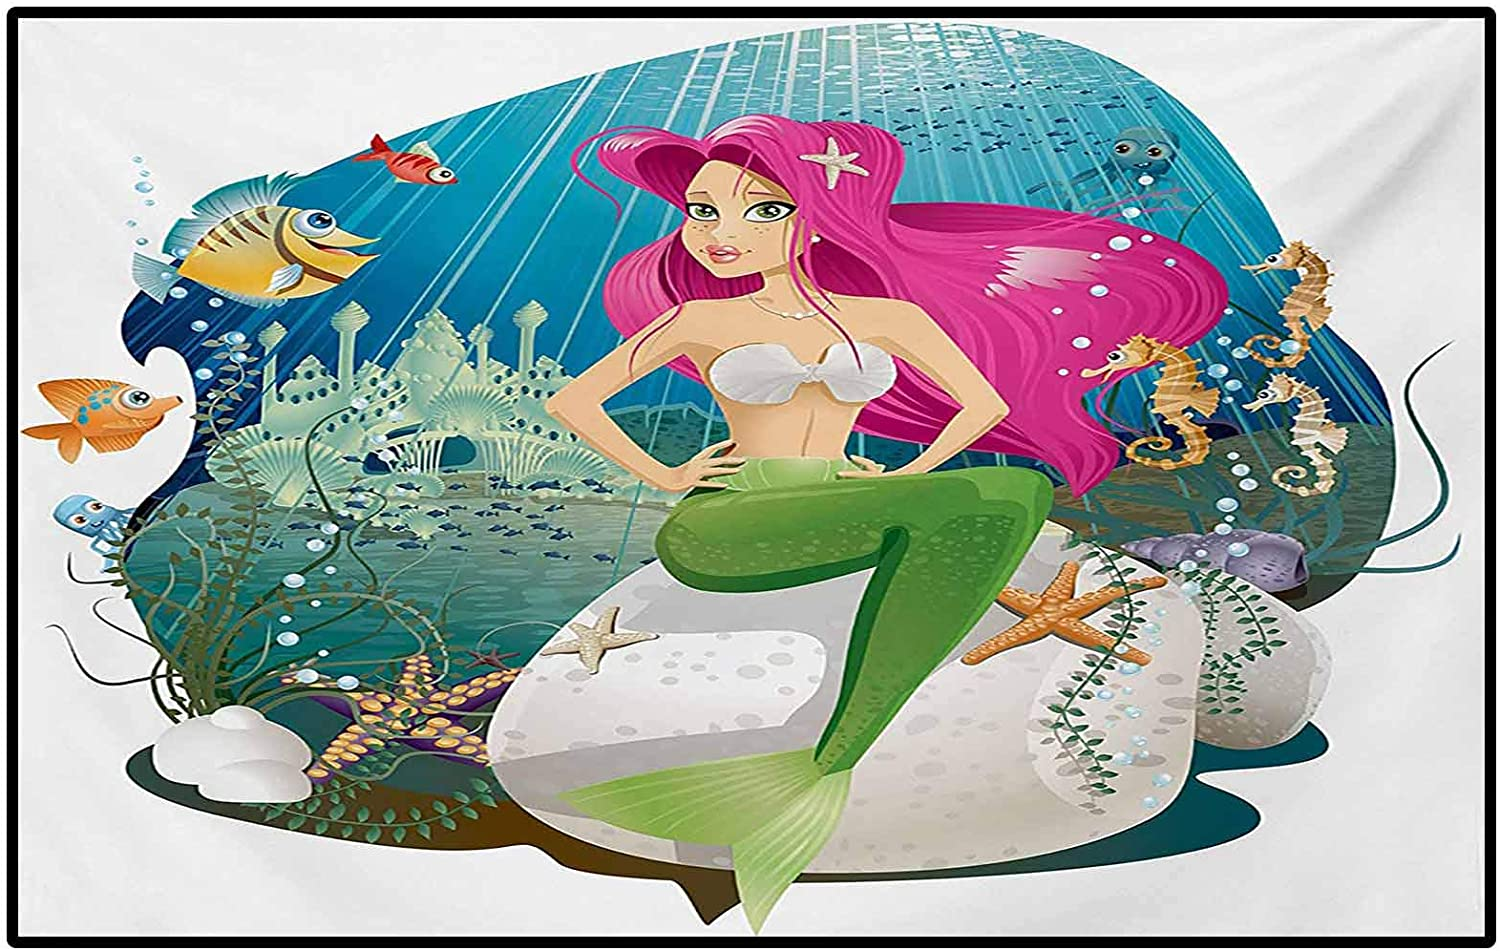 Underwater Outdoor Patio Rug Laundry Room Rug Illustration of a Mermaid and her Underwater World Colorful Landscape Print for Children Bedroom Home Decor Nursery Rug Multicolor 6.5 x 9.8 Ft